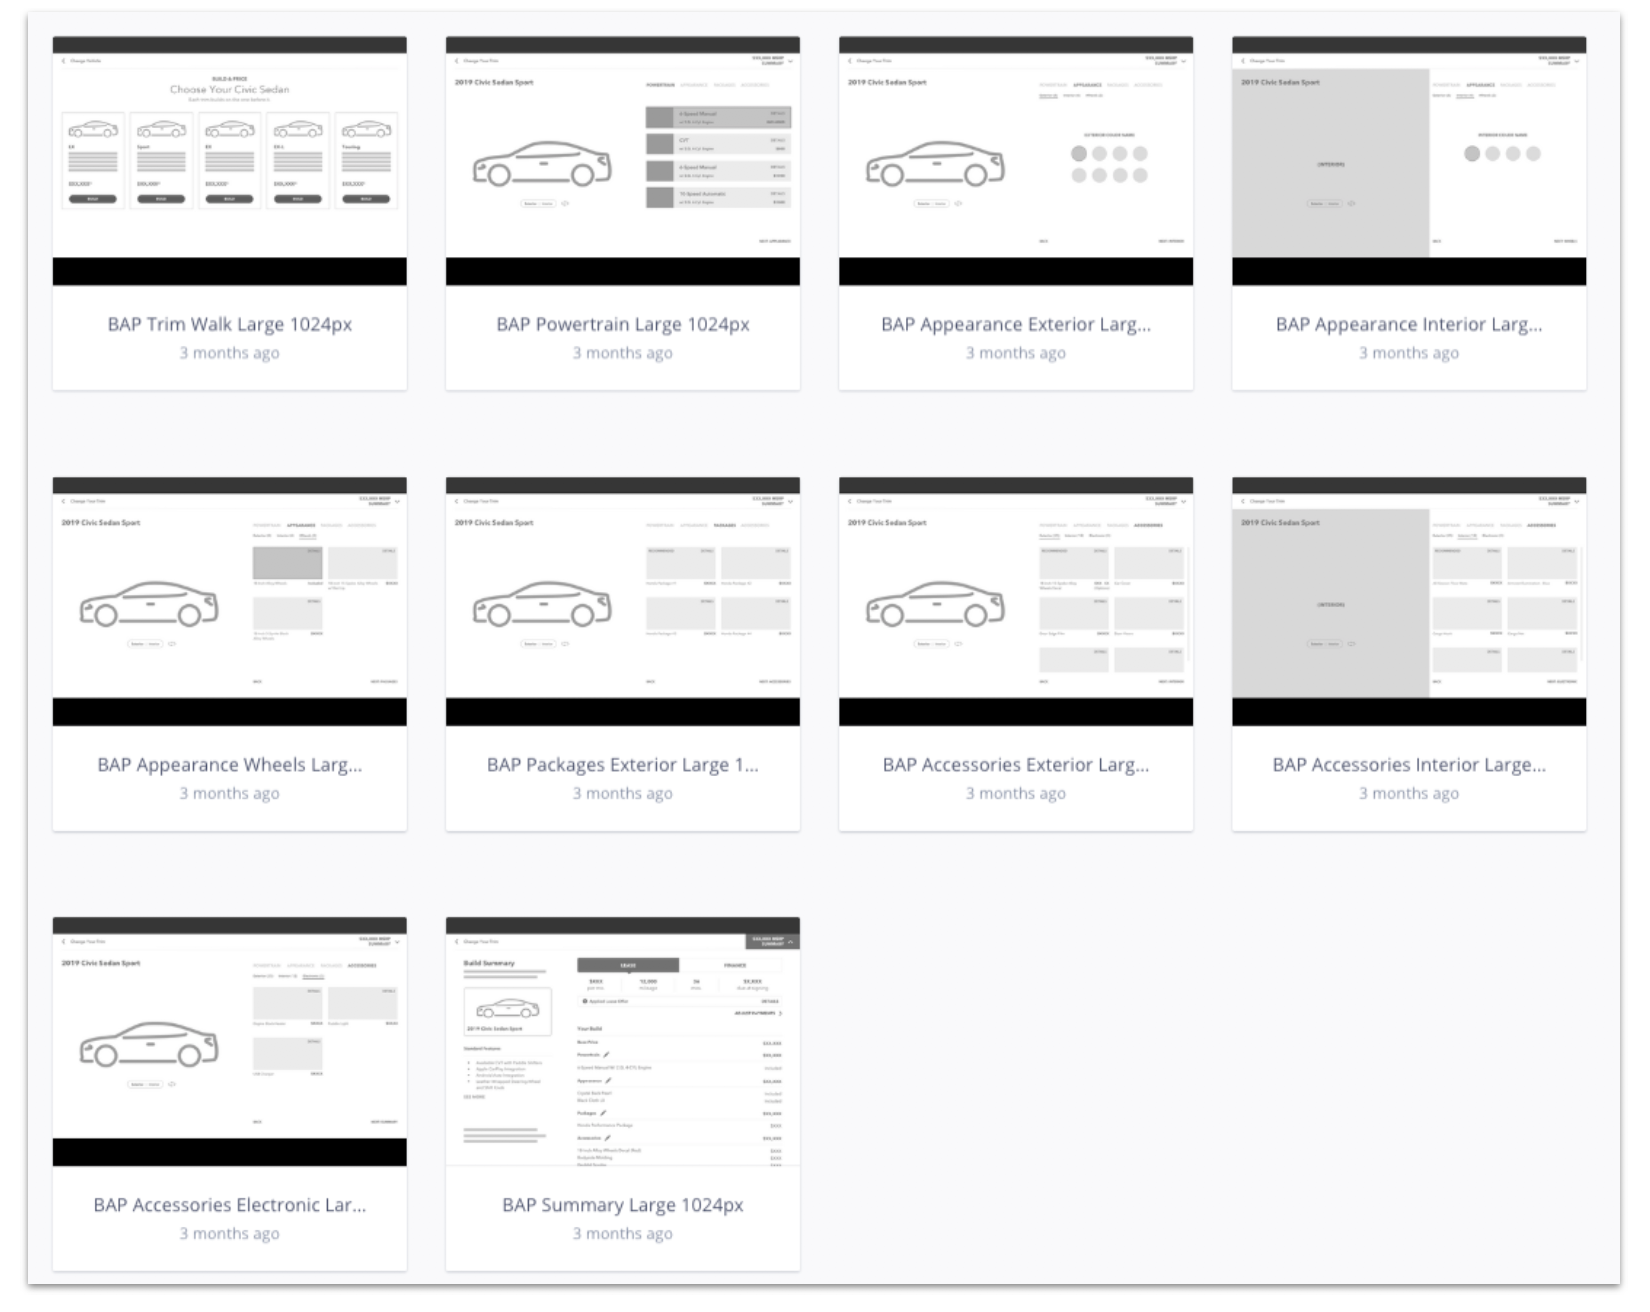 Honda Build and Price wireframes